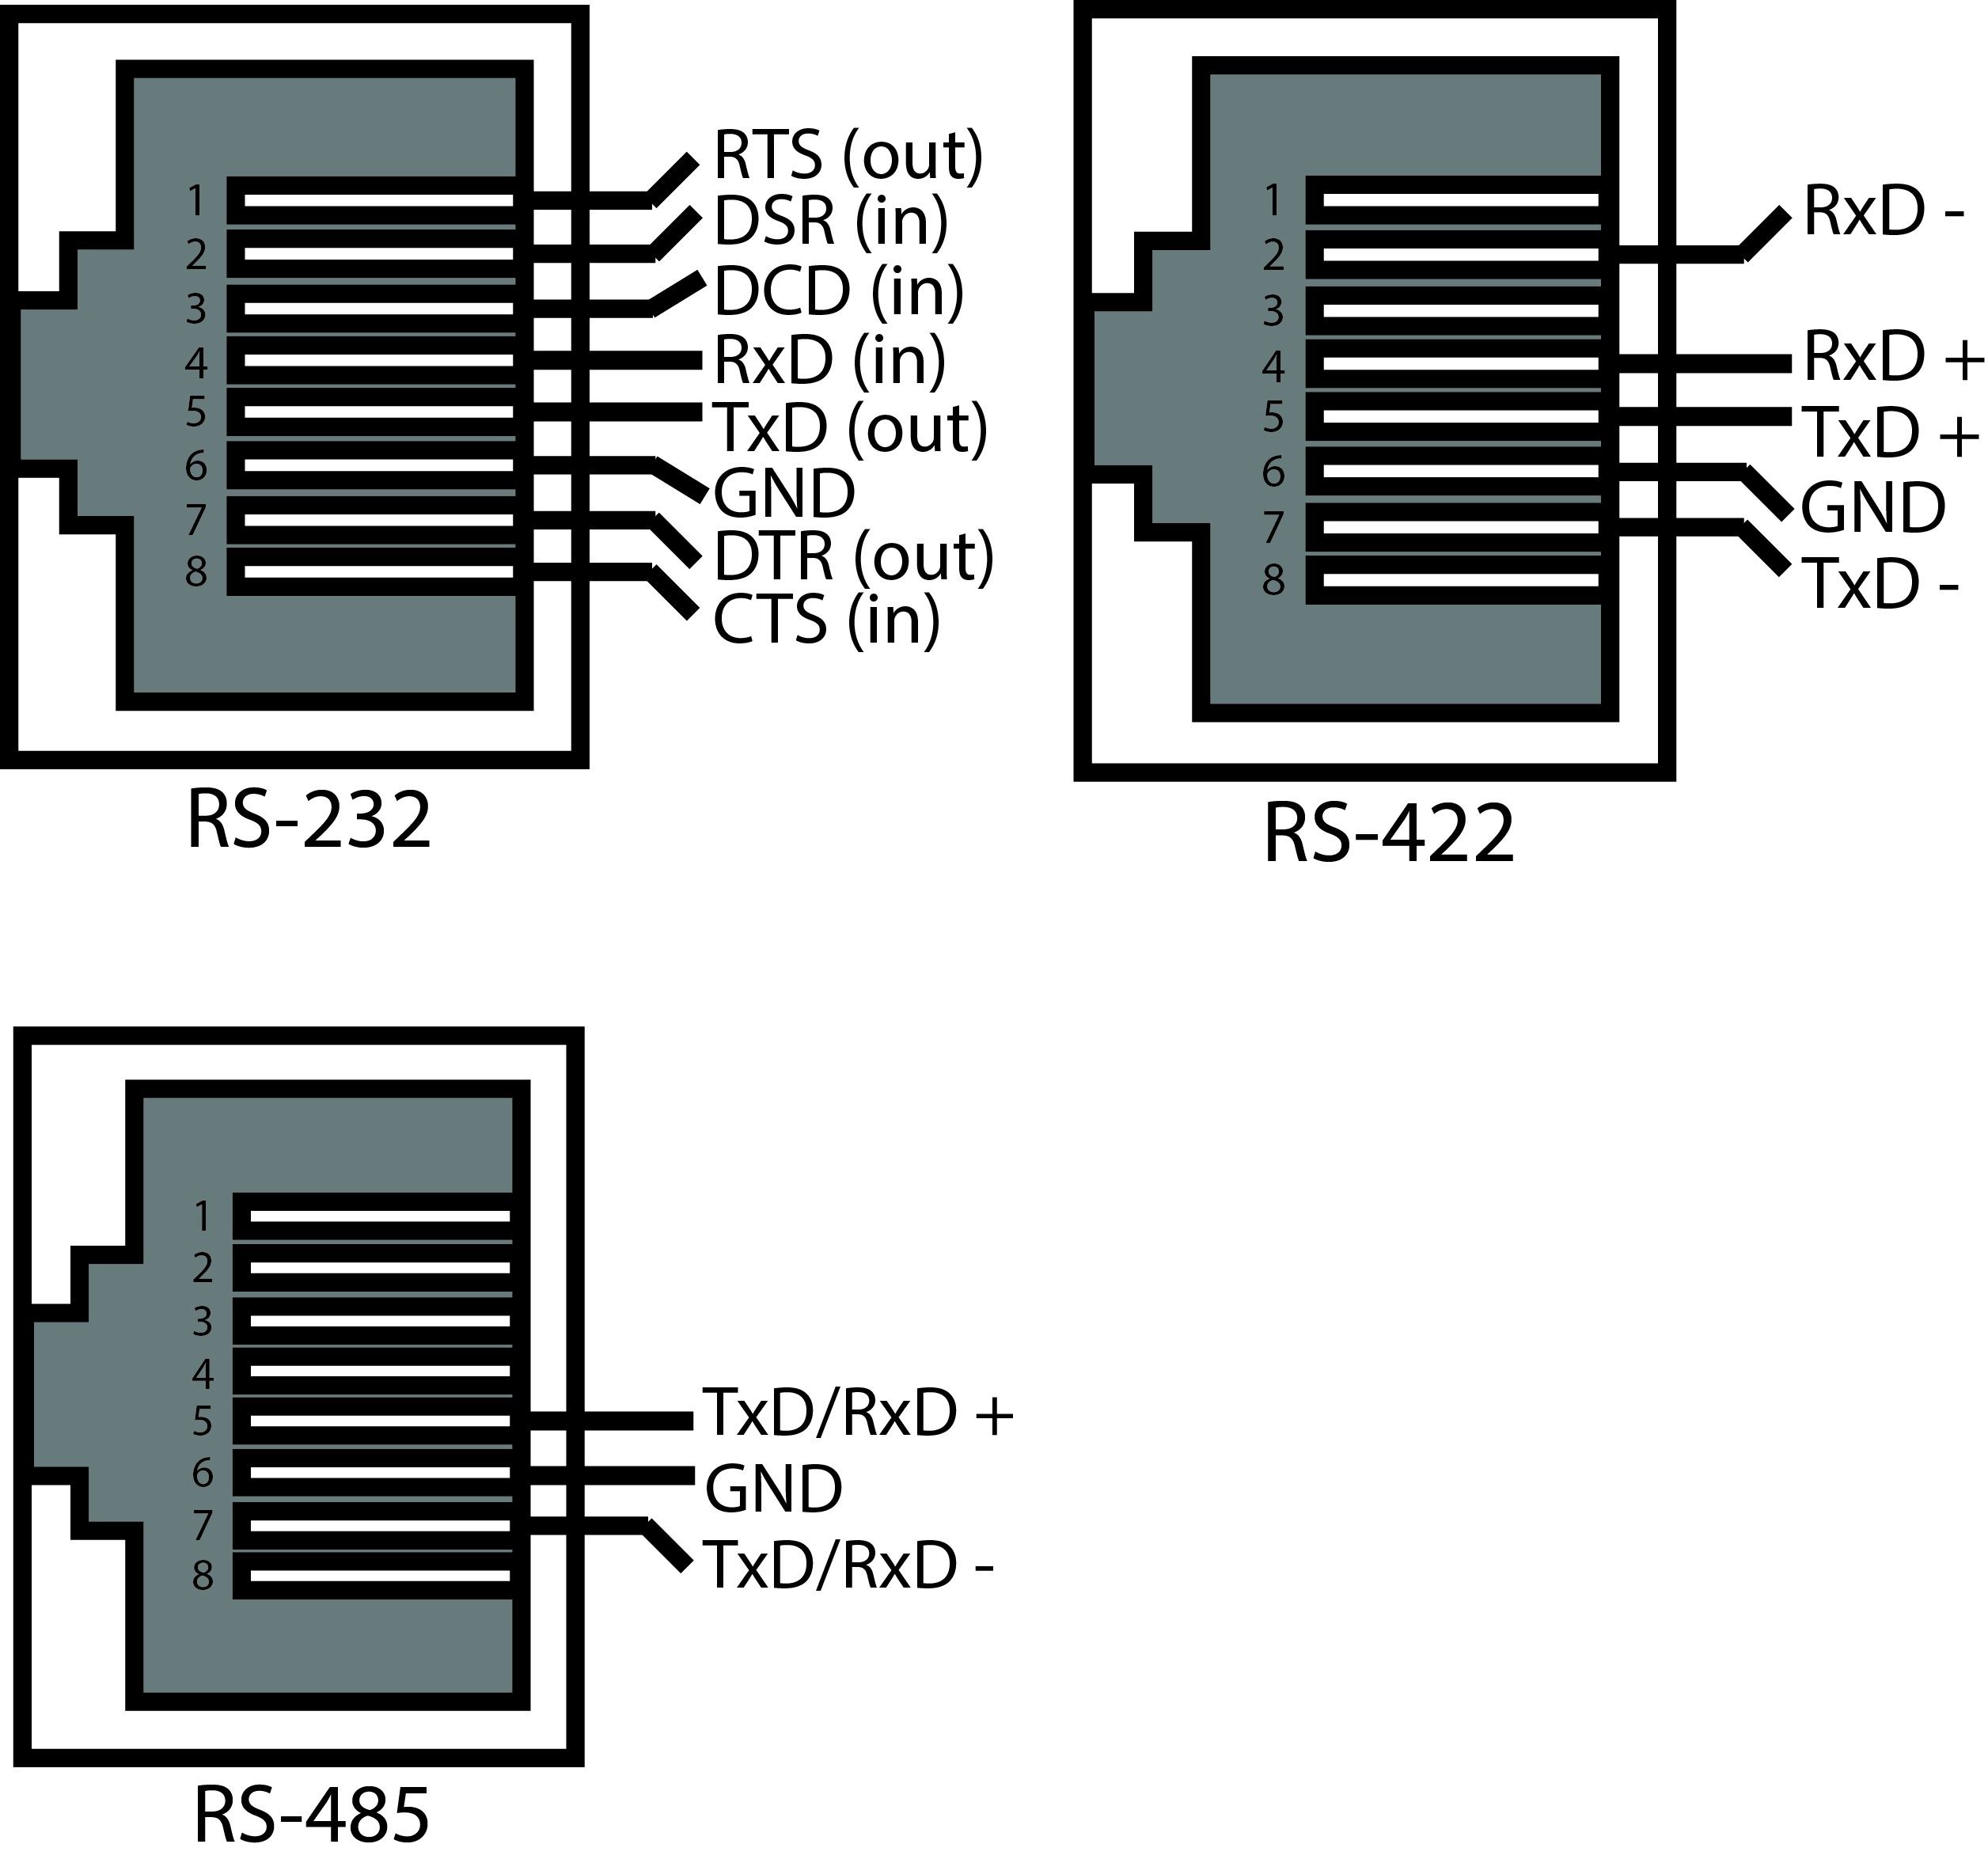 Poe Ethernet Wiring Diagram Nice Place To Get Power Over How Do I My Camera Modbus Rs485 Pinout